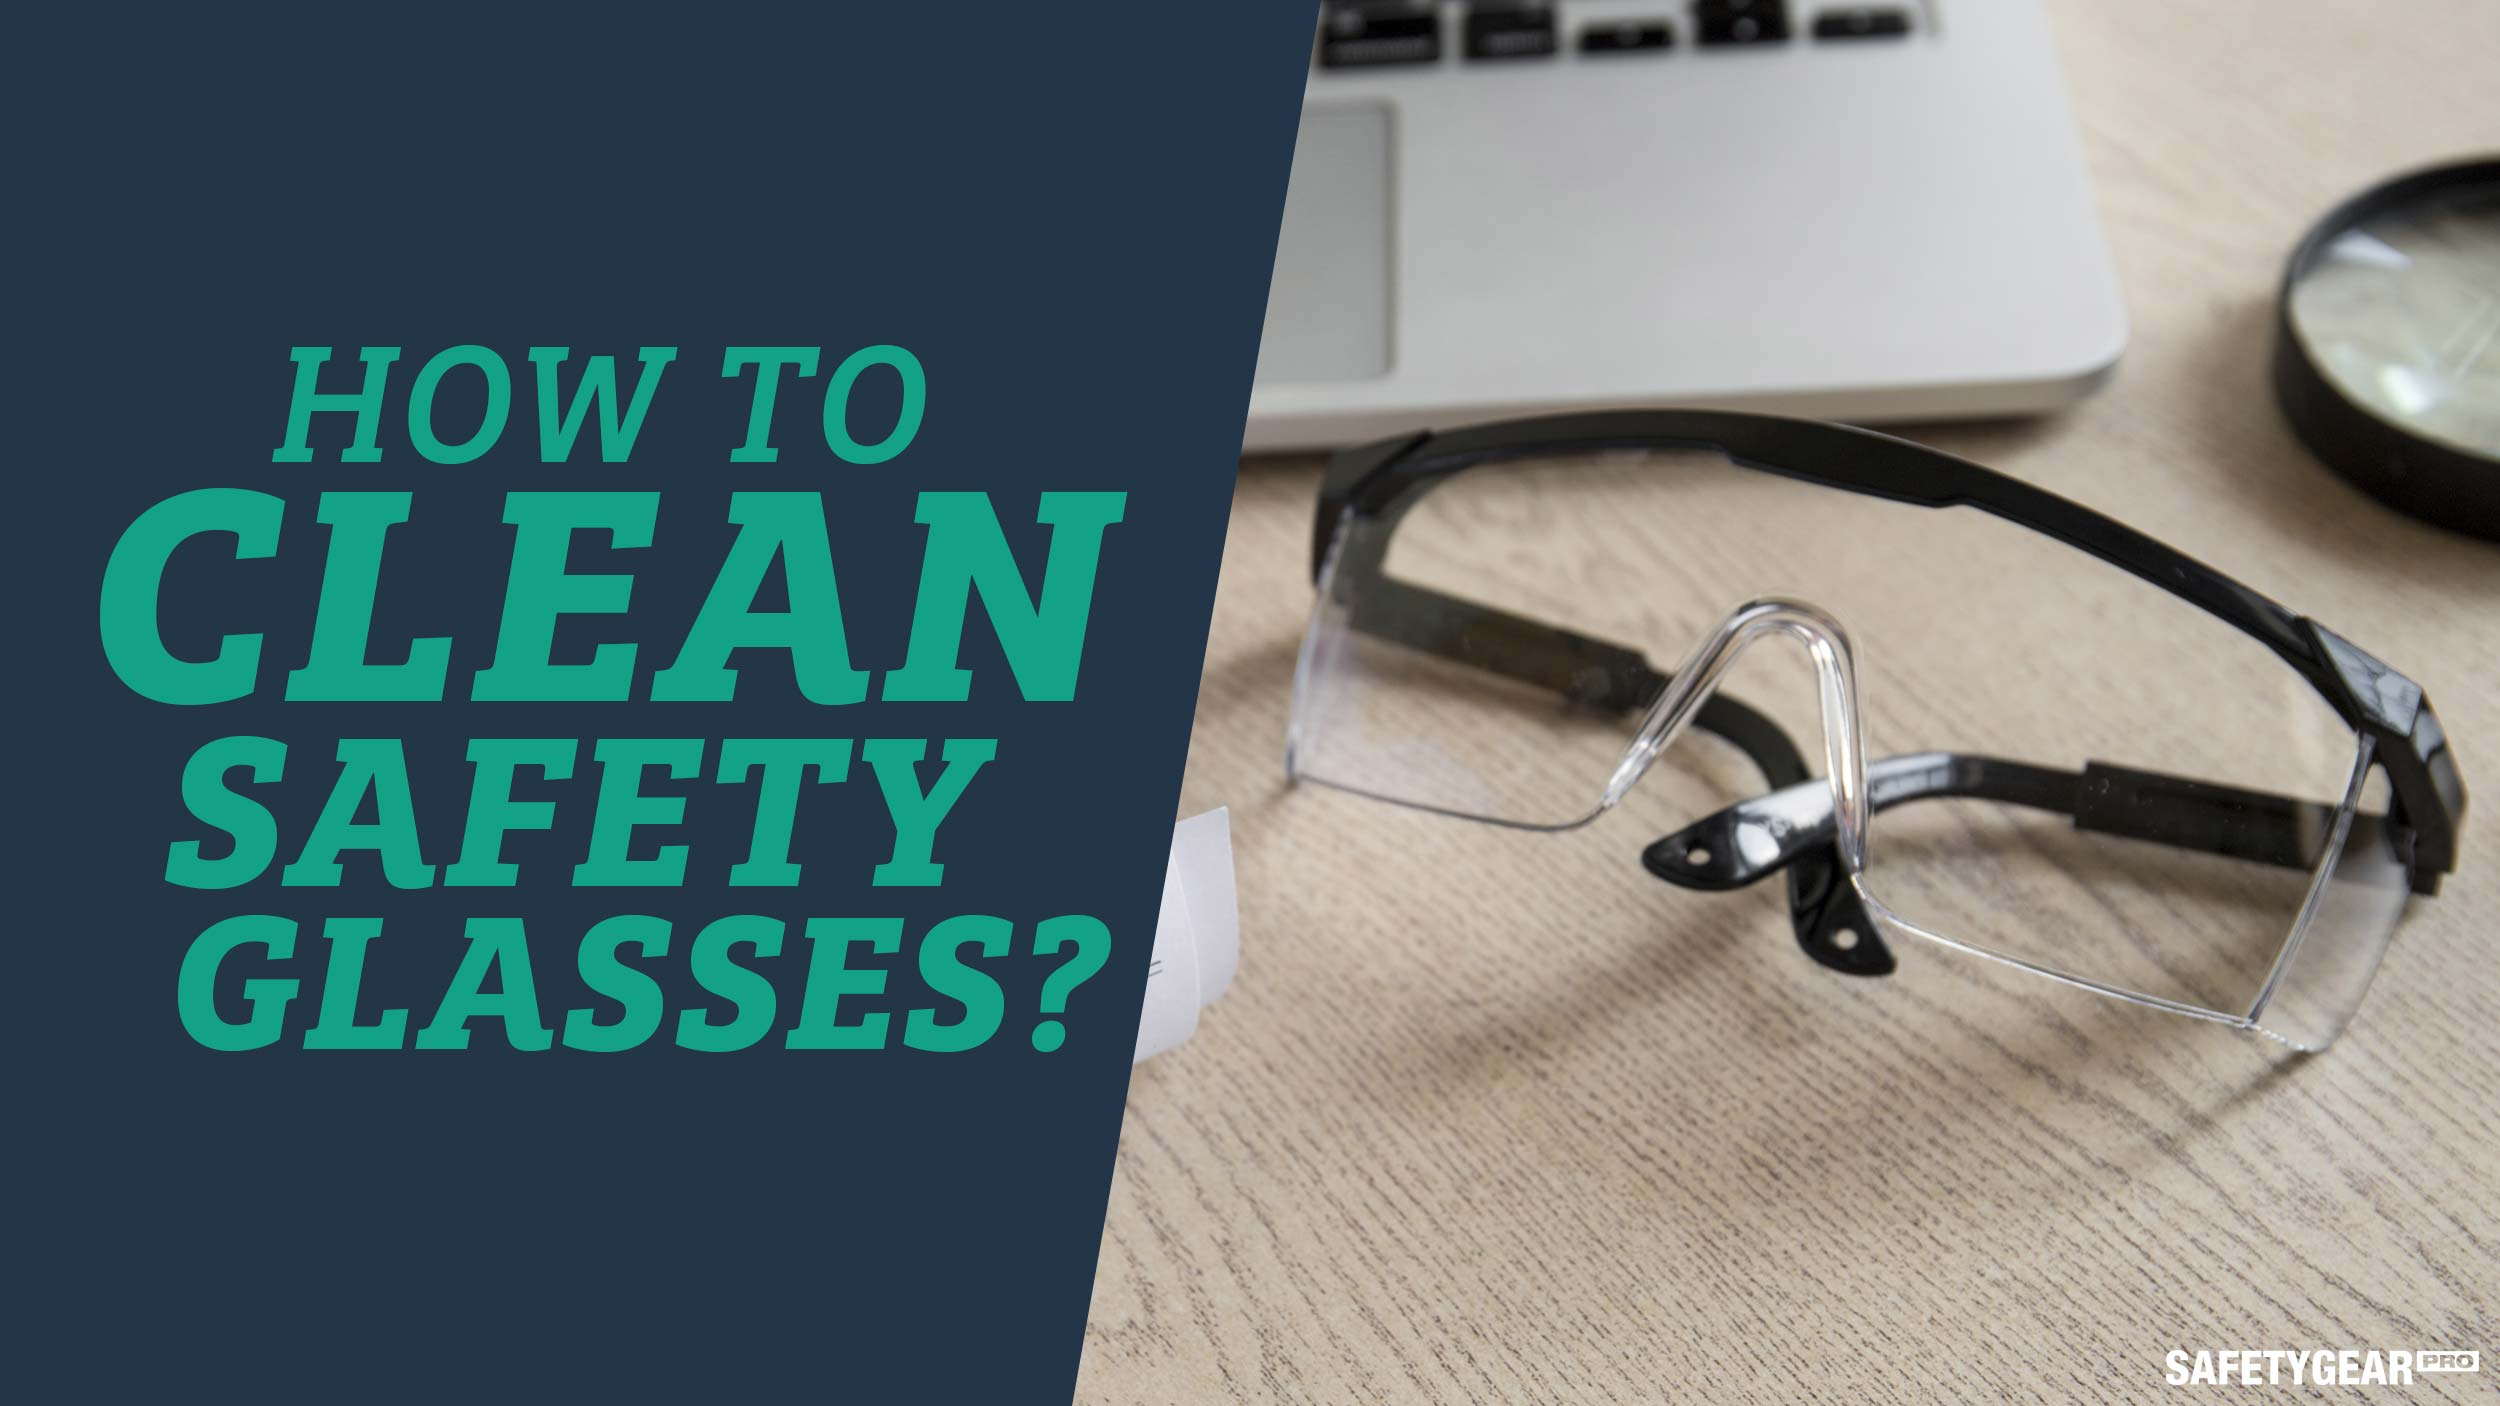 How to clean safety glasses